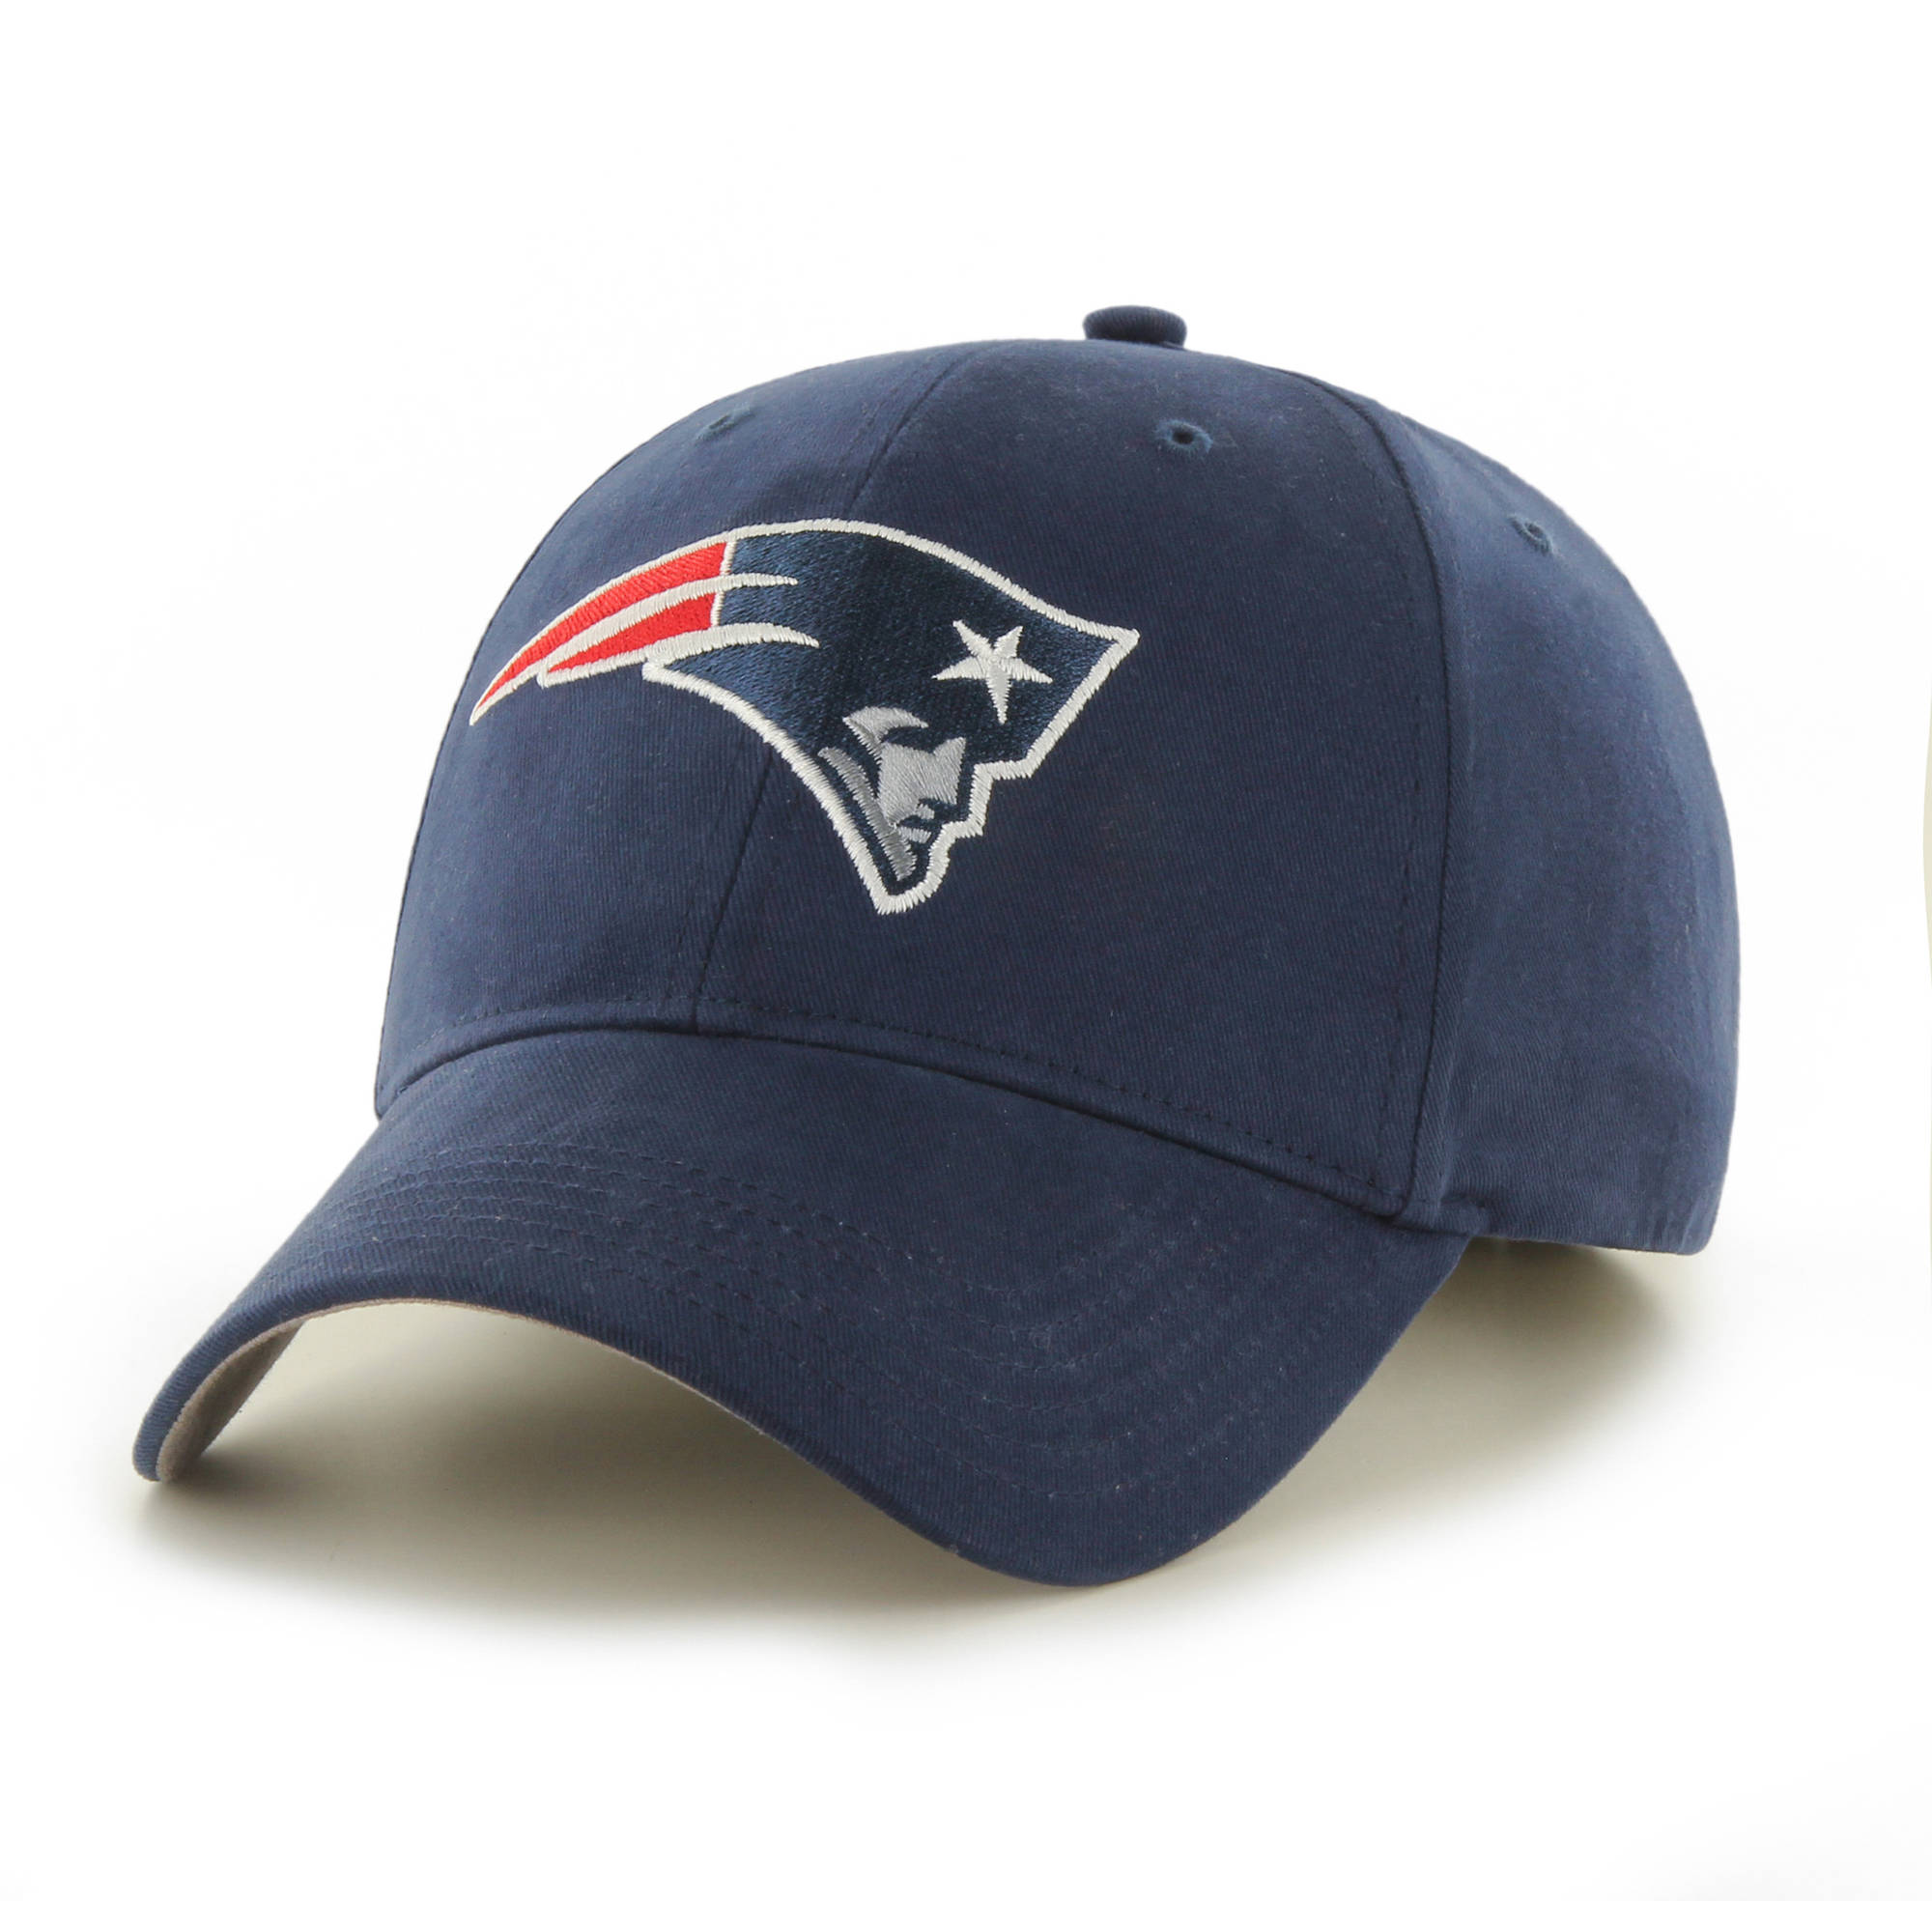 NFL New England Patriots Basic Cap / Hat - Fan Favorite